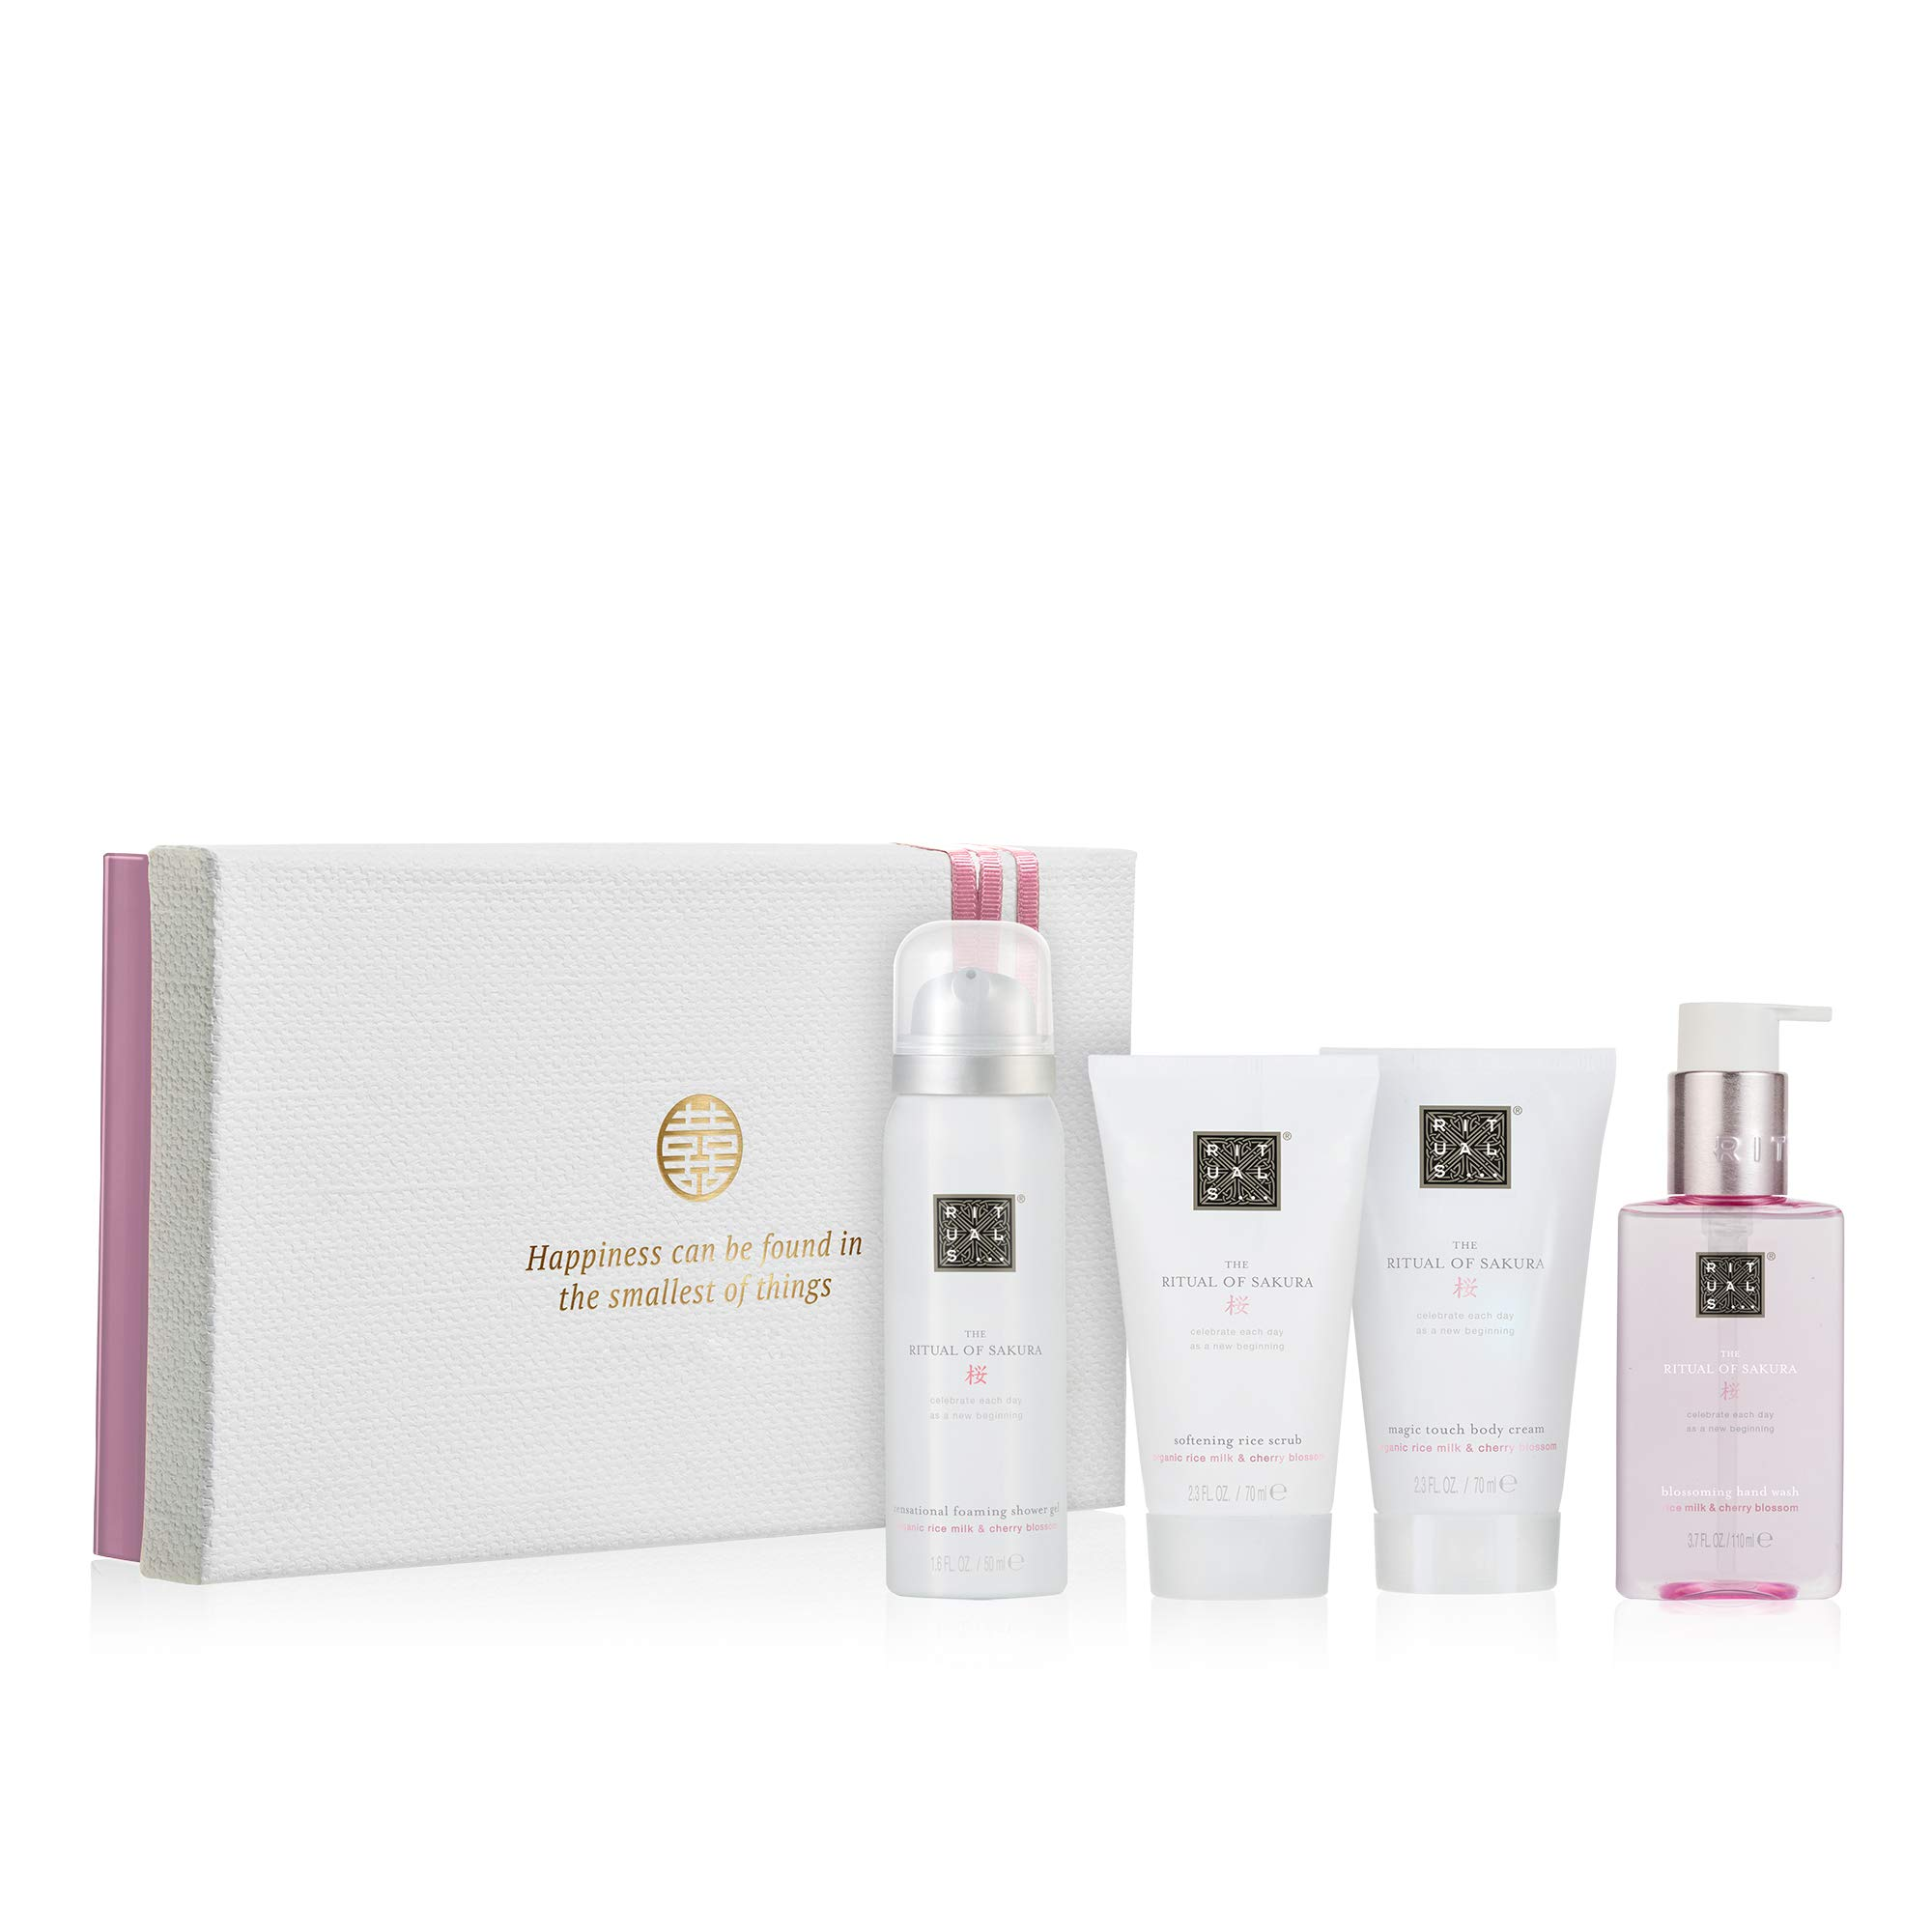 RITUALS The Ritual of Sakura Gift Set Small, Renewing Treat